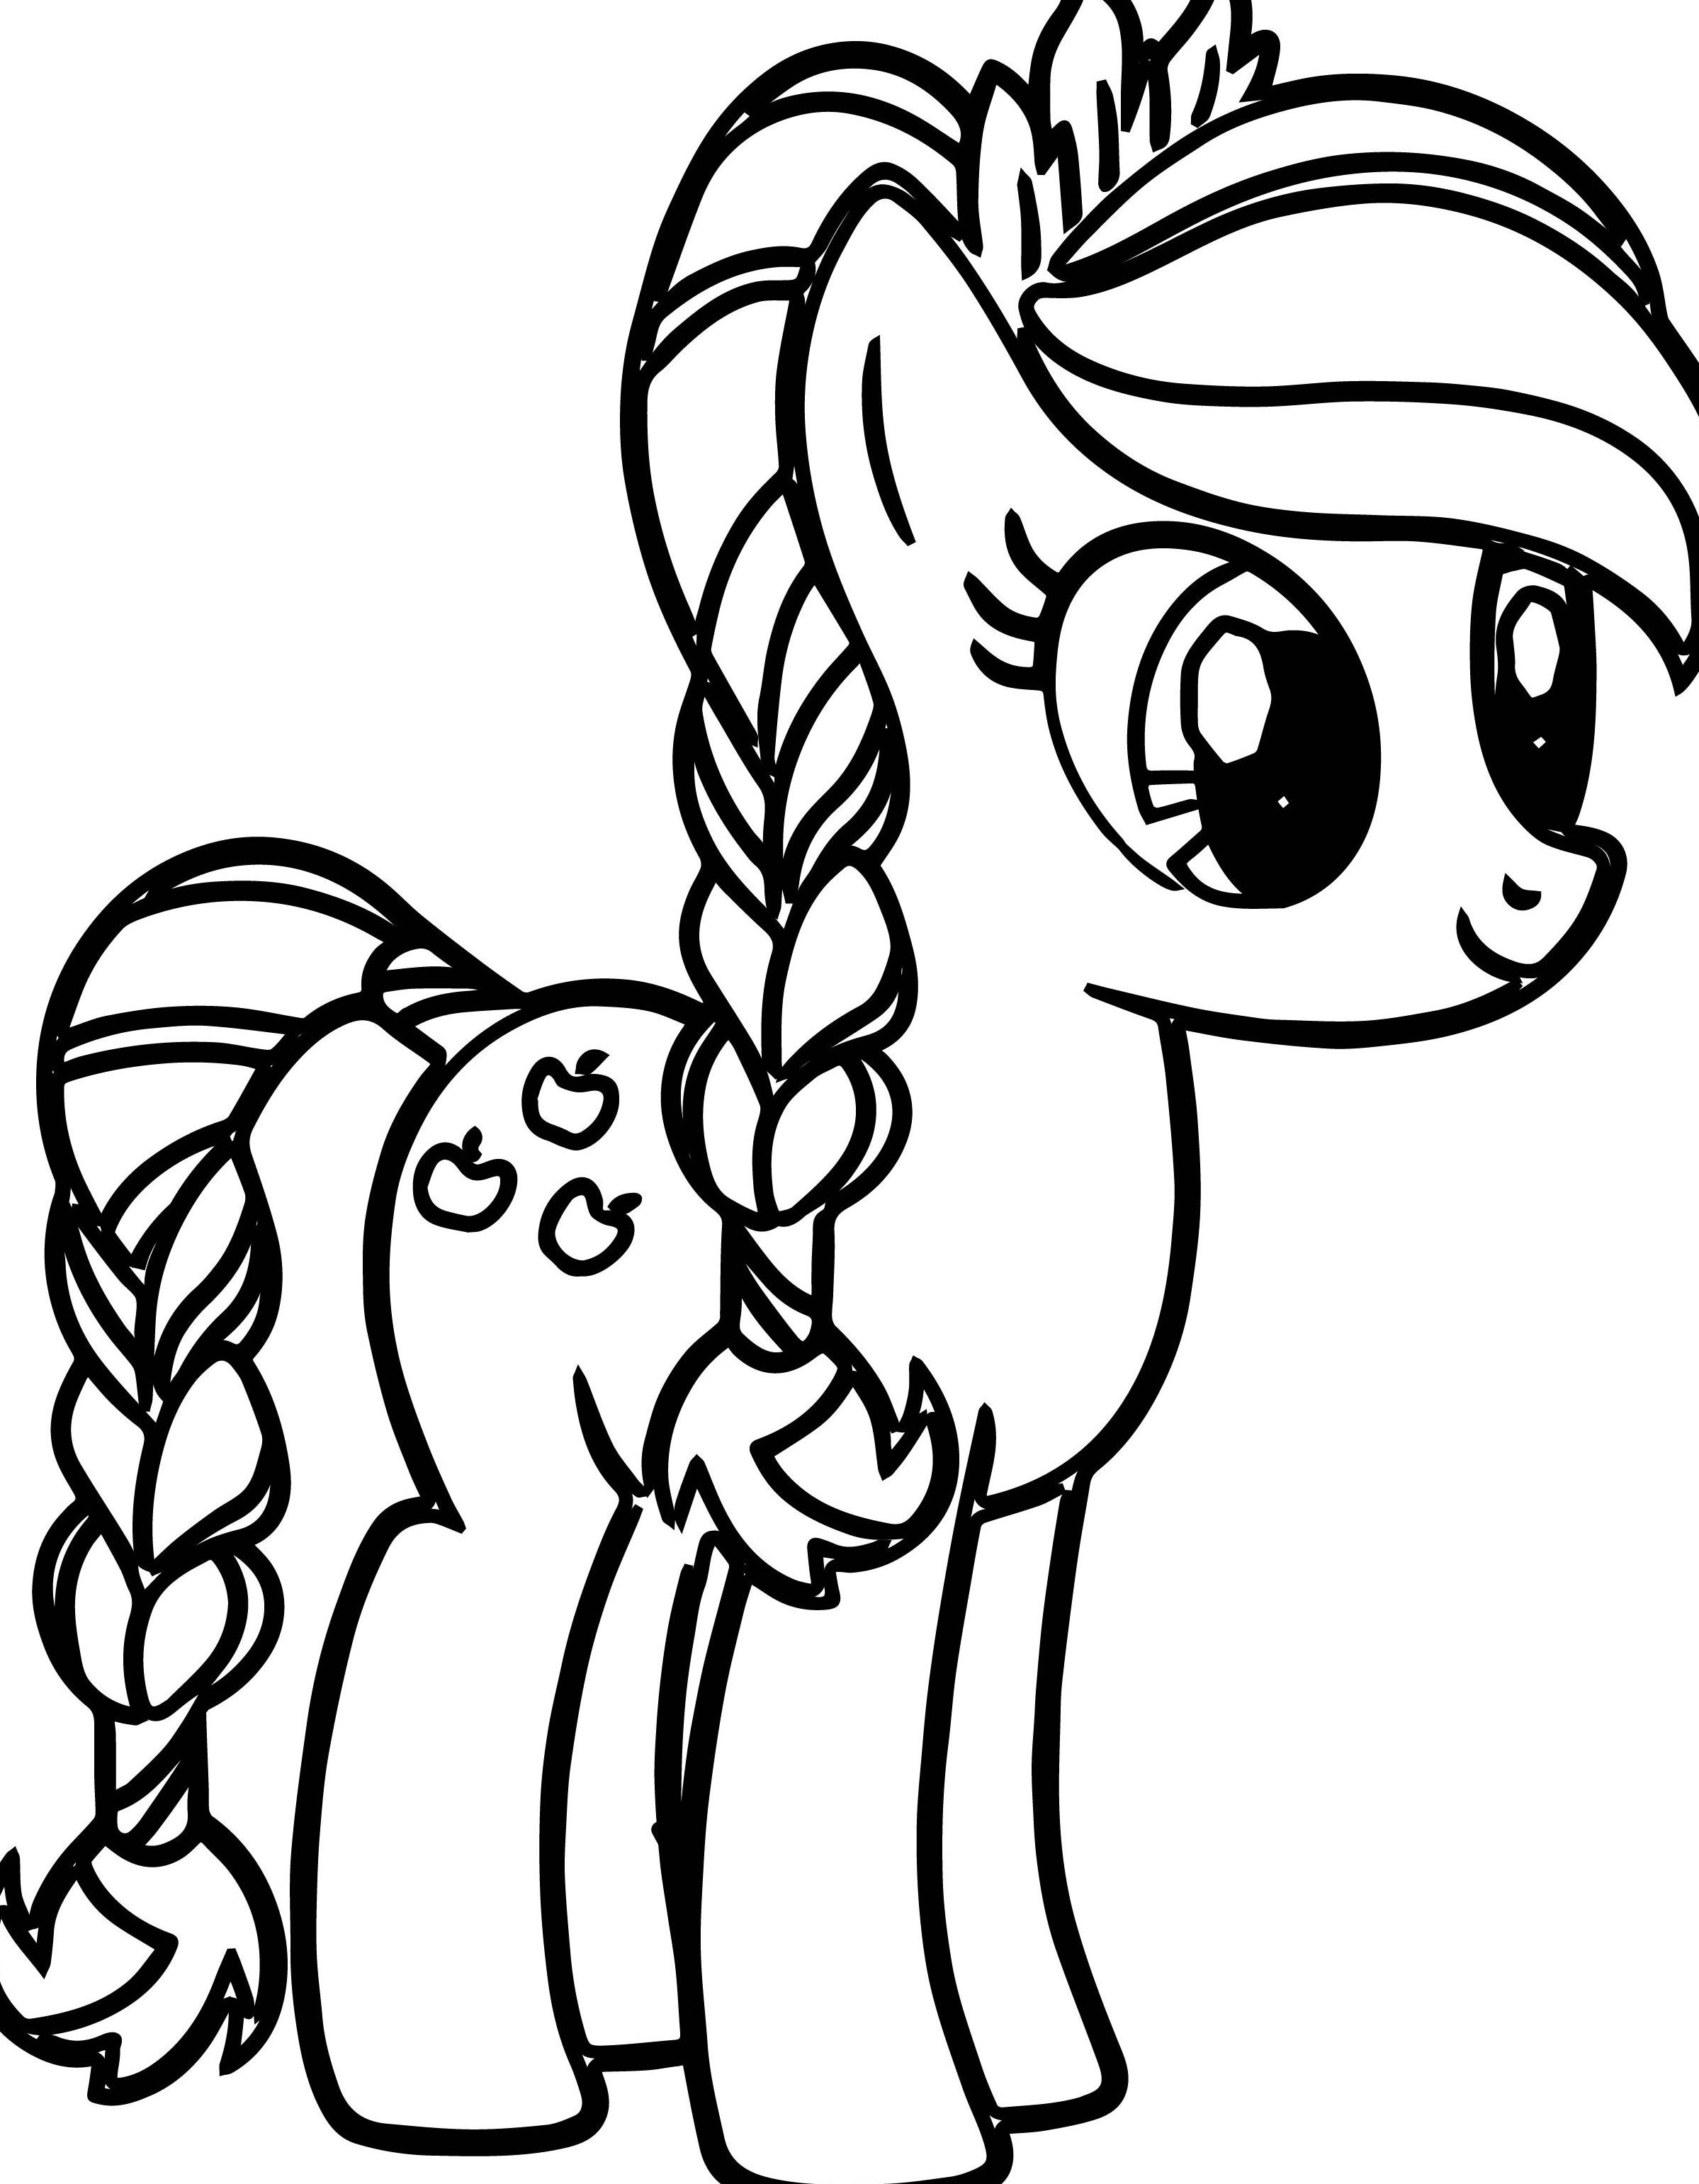 my little pony friendship is magic coloring pages Collection-little pony 17-k